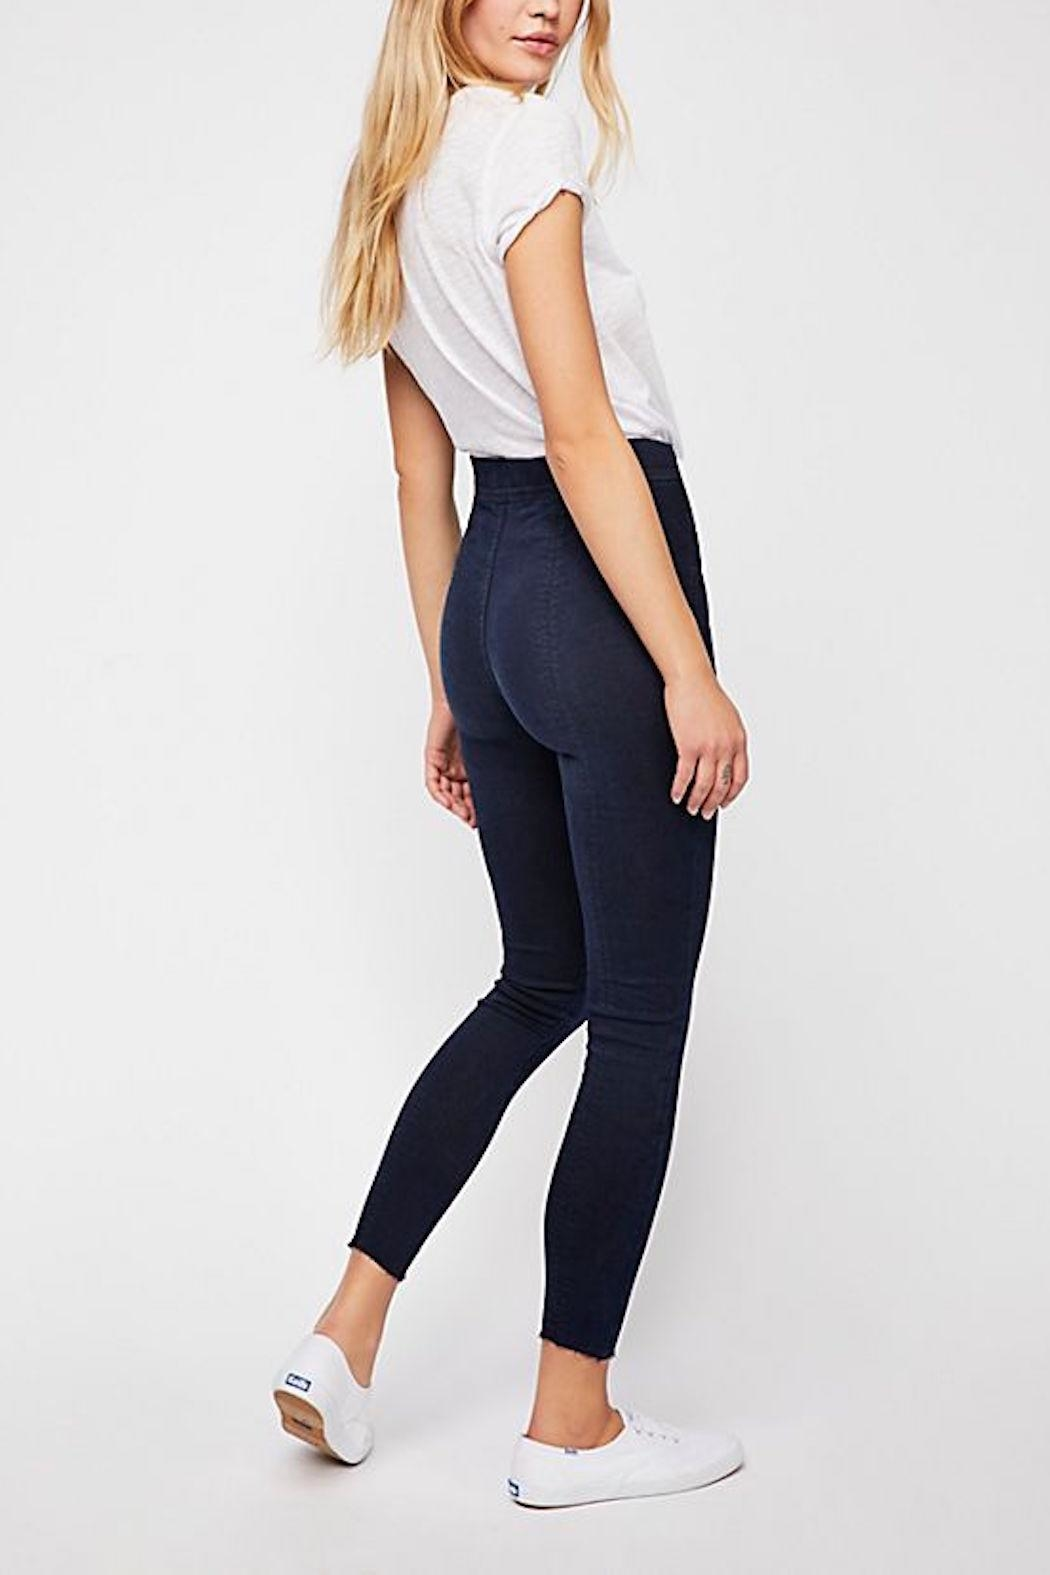 Free People Seamed Skinny Jean - Side Cropped Image